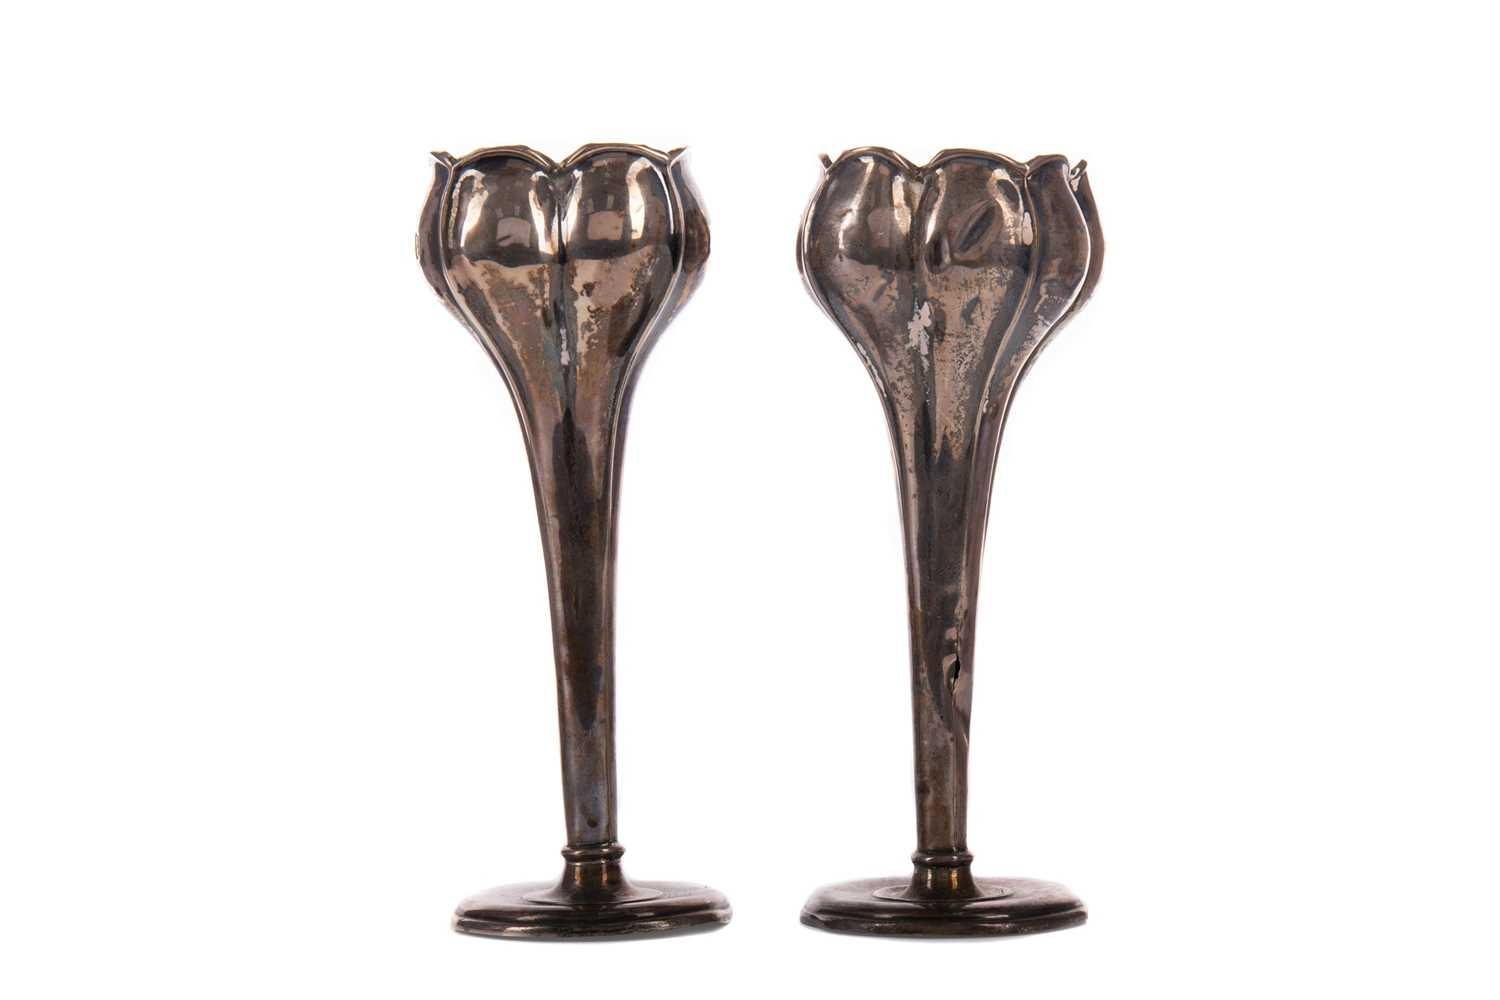 Lot 424 - A PAIR OF SILVER BUD VASES, PEPPER POT AND GROUP OF SILVER SPOONS